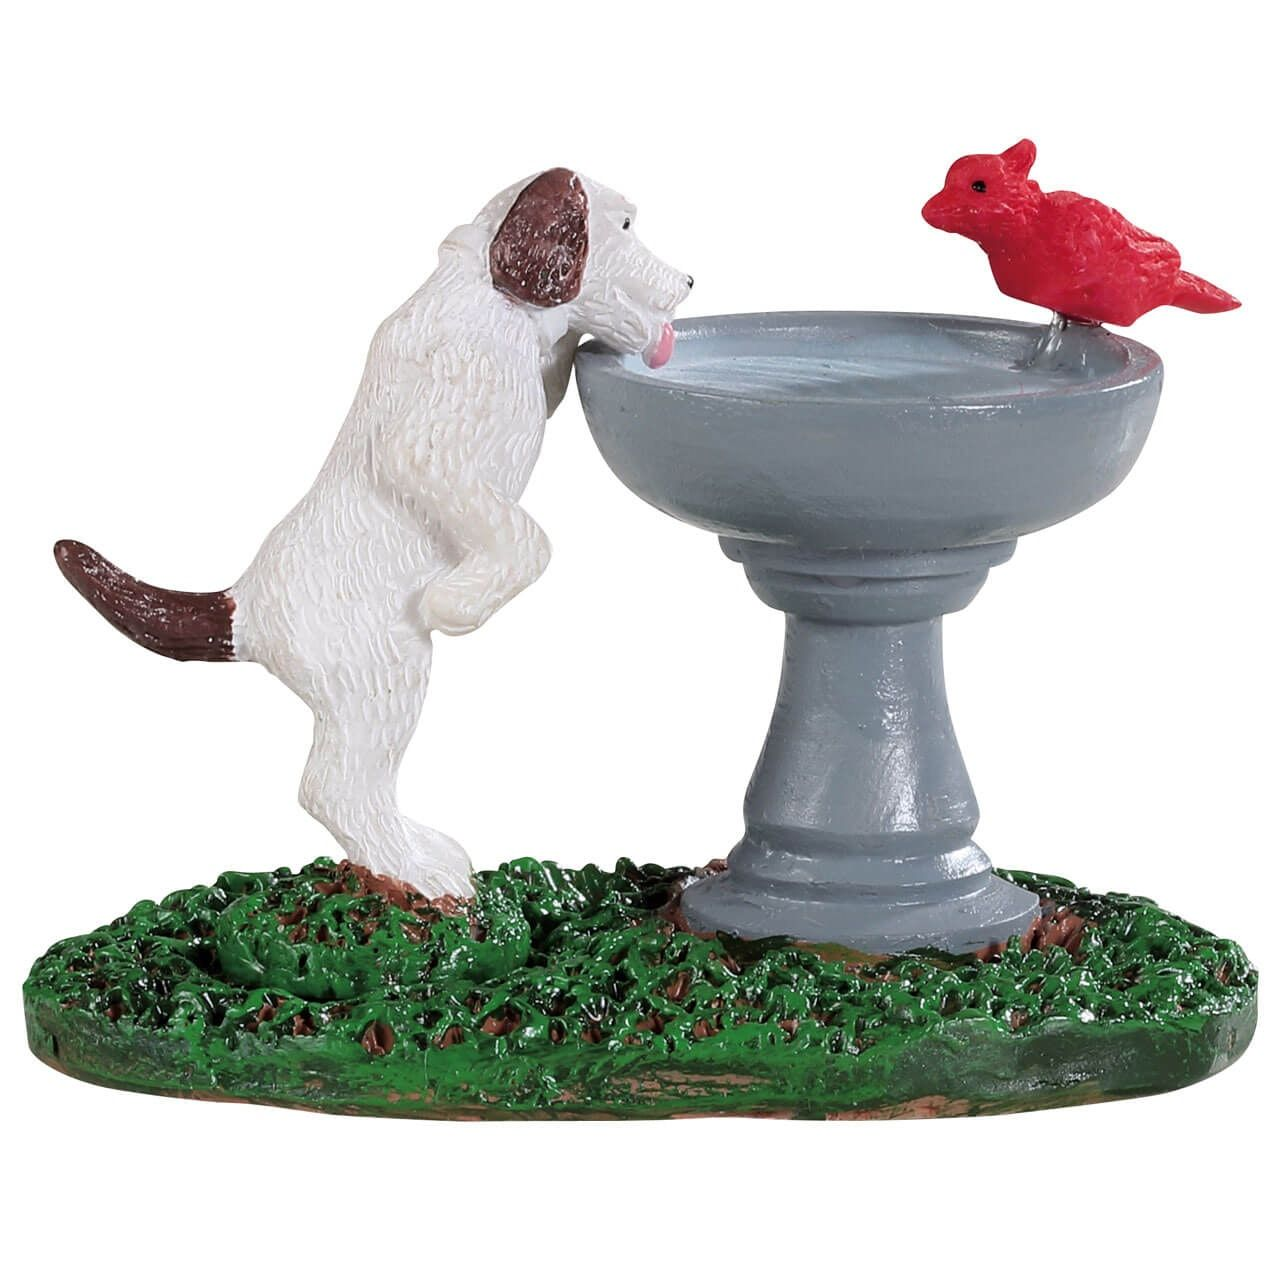 Lemax Bird Bath Dog Fountain Sku 94535 Released In 2019 As An